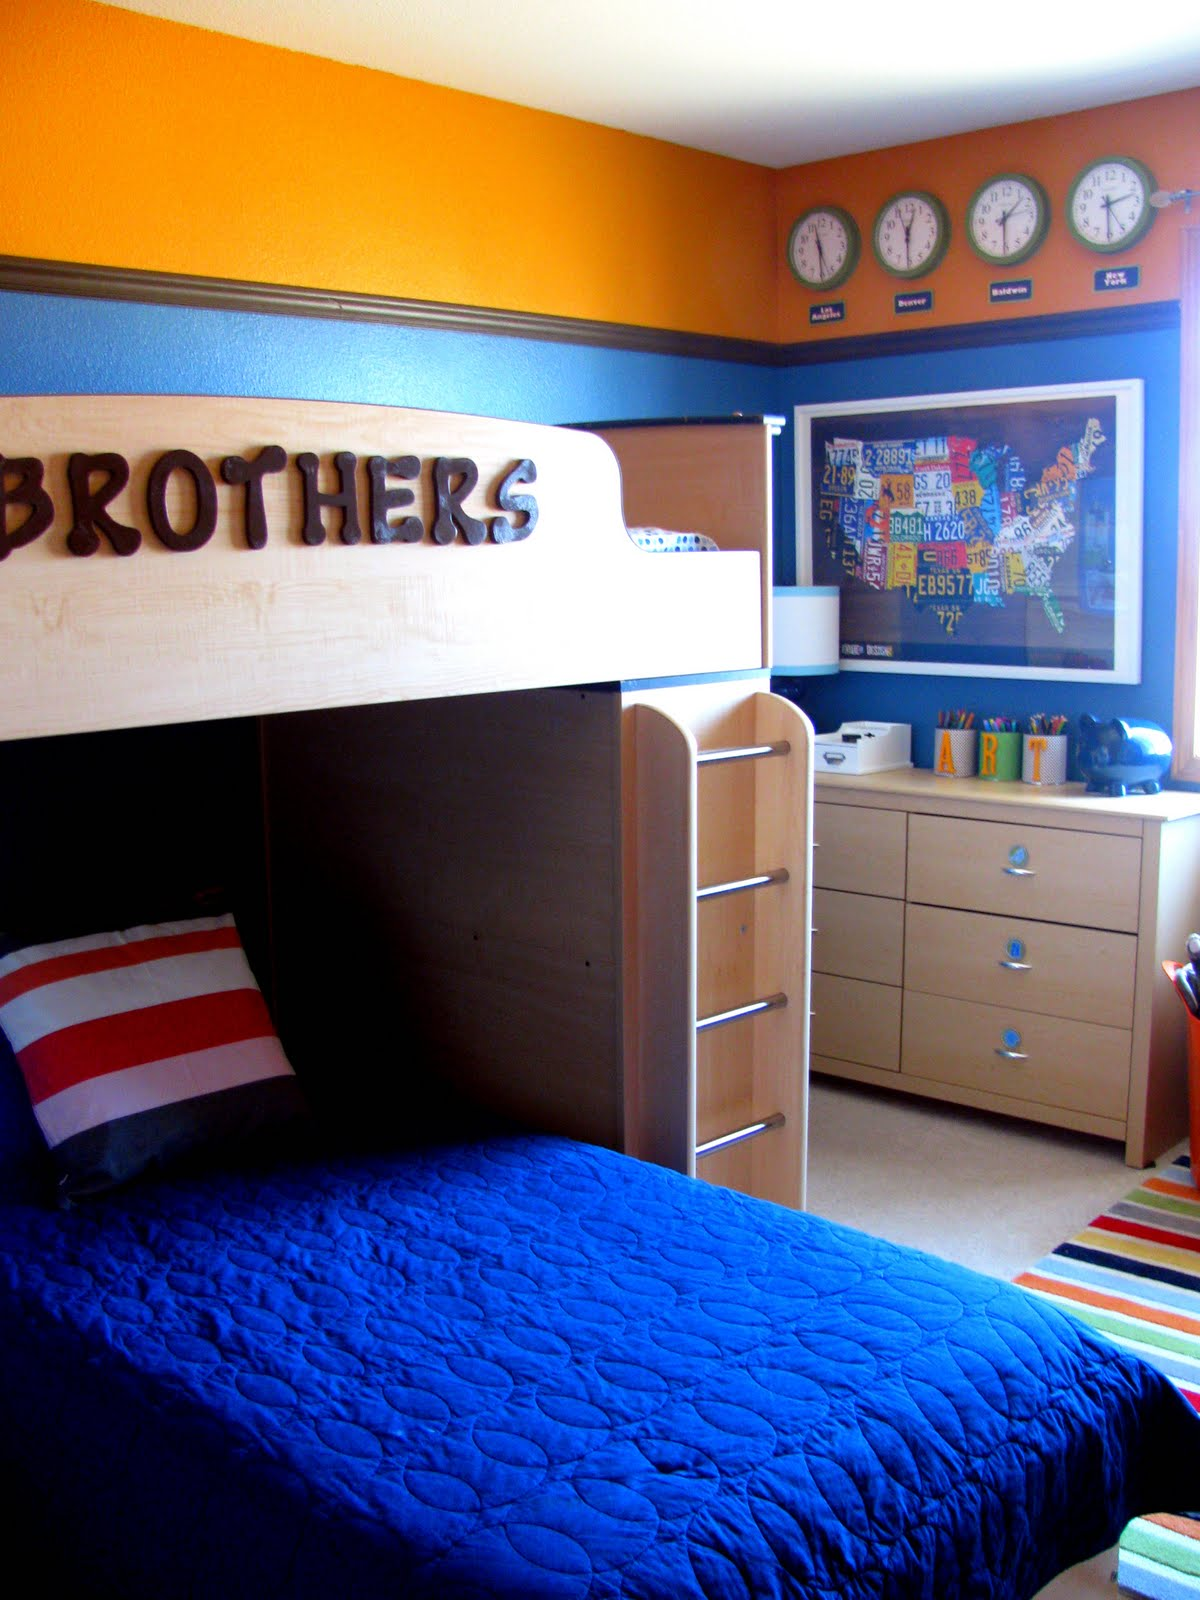 Kids bedroom painting ideas wallpress 1080p hd desktop for Decorating boys bedroom ideas photos